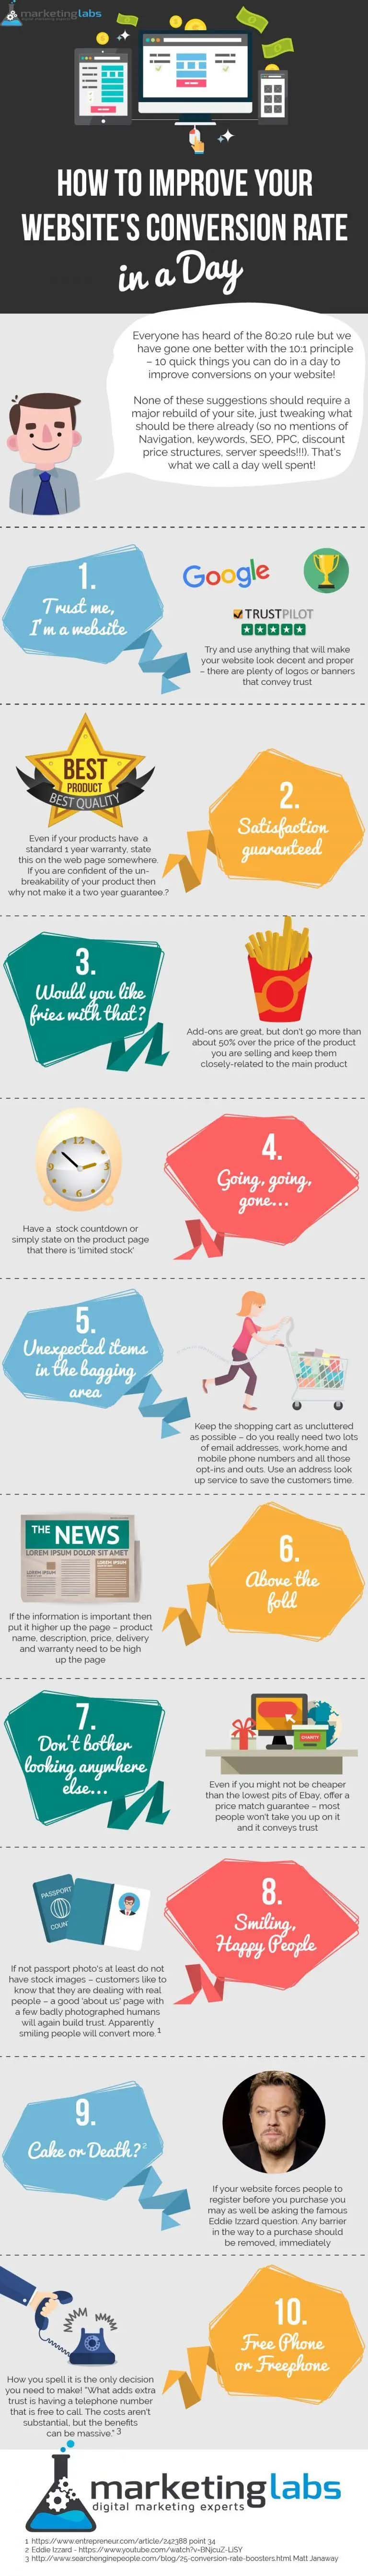 conversion-rate-infographic